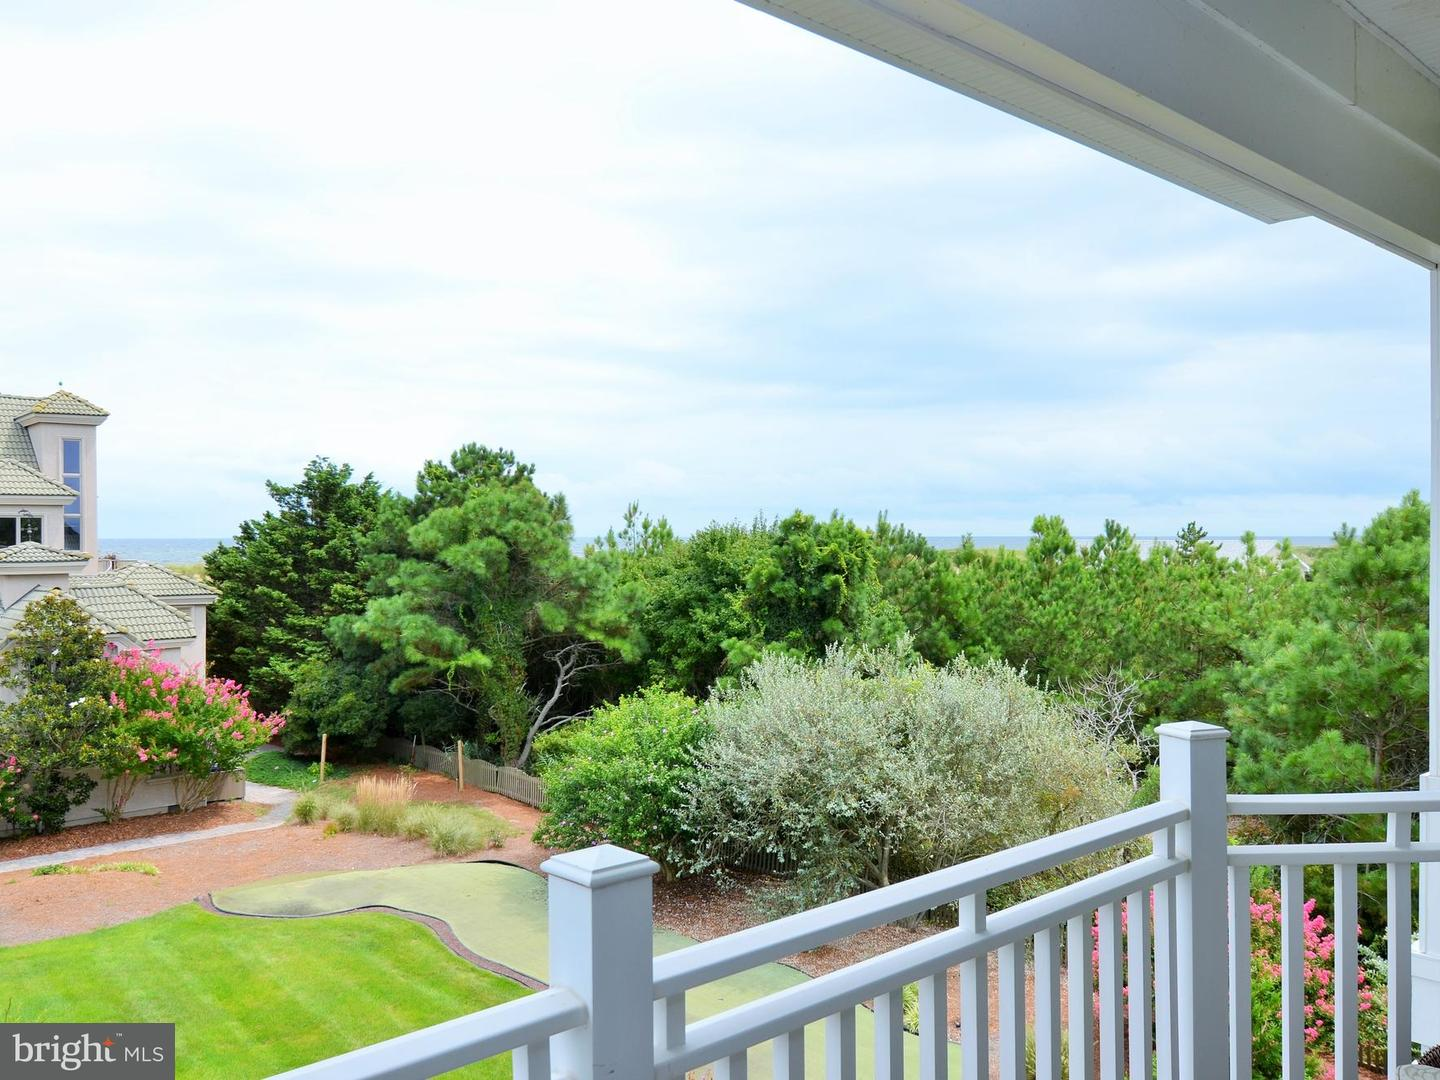 1002293530-300500811662-2018-09-25-15-08-25 31 Hall Ave | Rehoboth Beach, DE Real Estate For Sale | MLS# 1002293530  - 1st Choice Properties